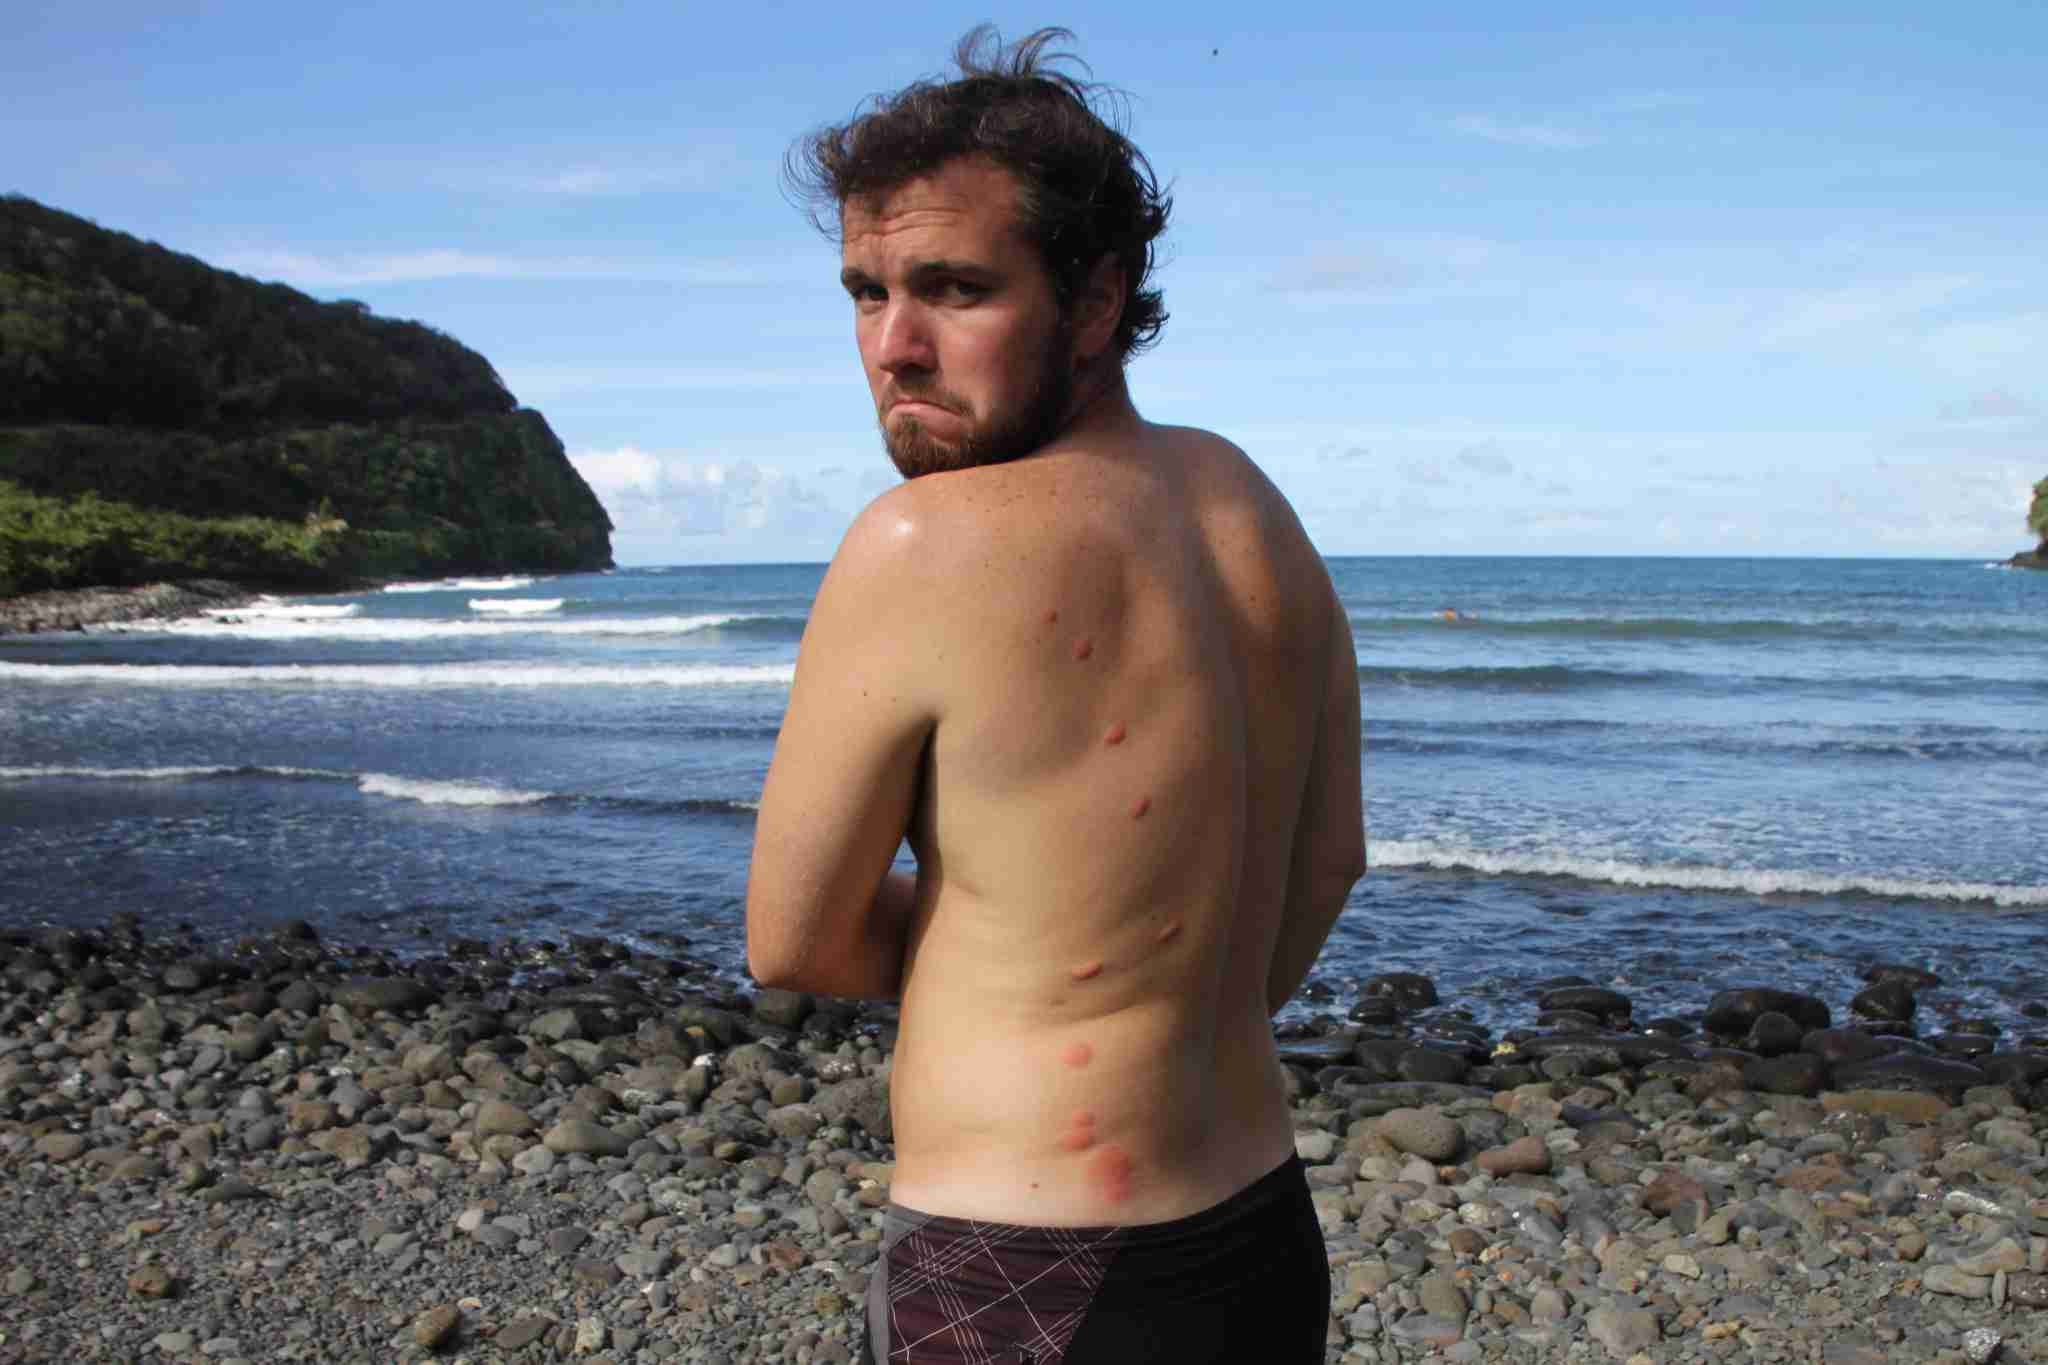 From my first and worst bed bug attack - a hostel in Maui in 2010.